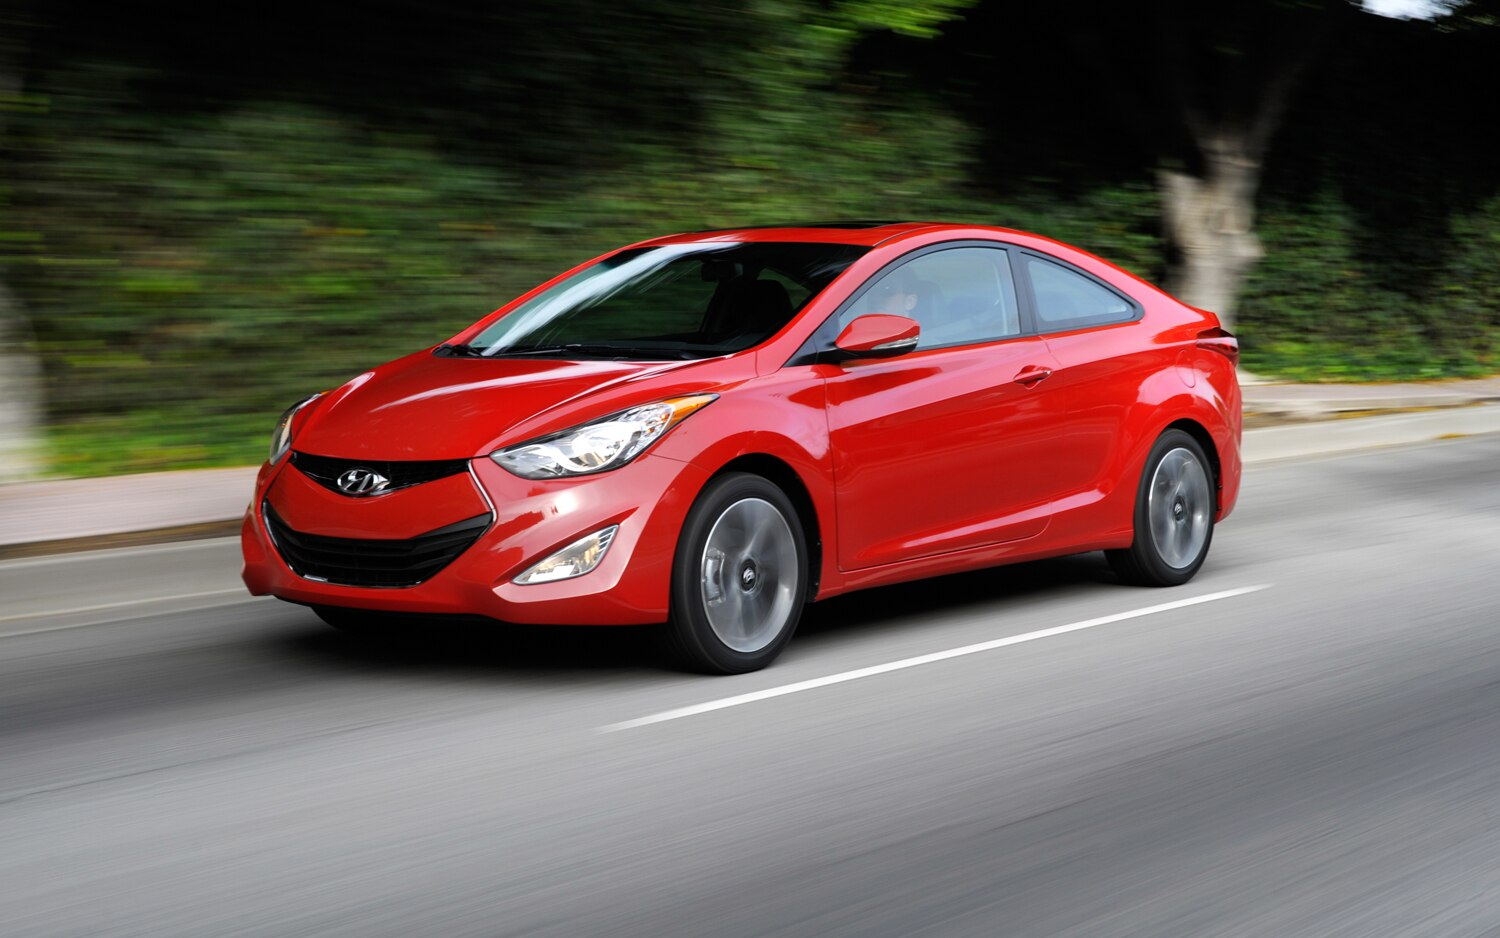 2013 Hyundai Elantra Coupe Front Three Quarter In Motion1